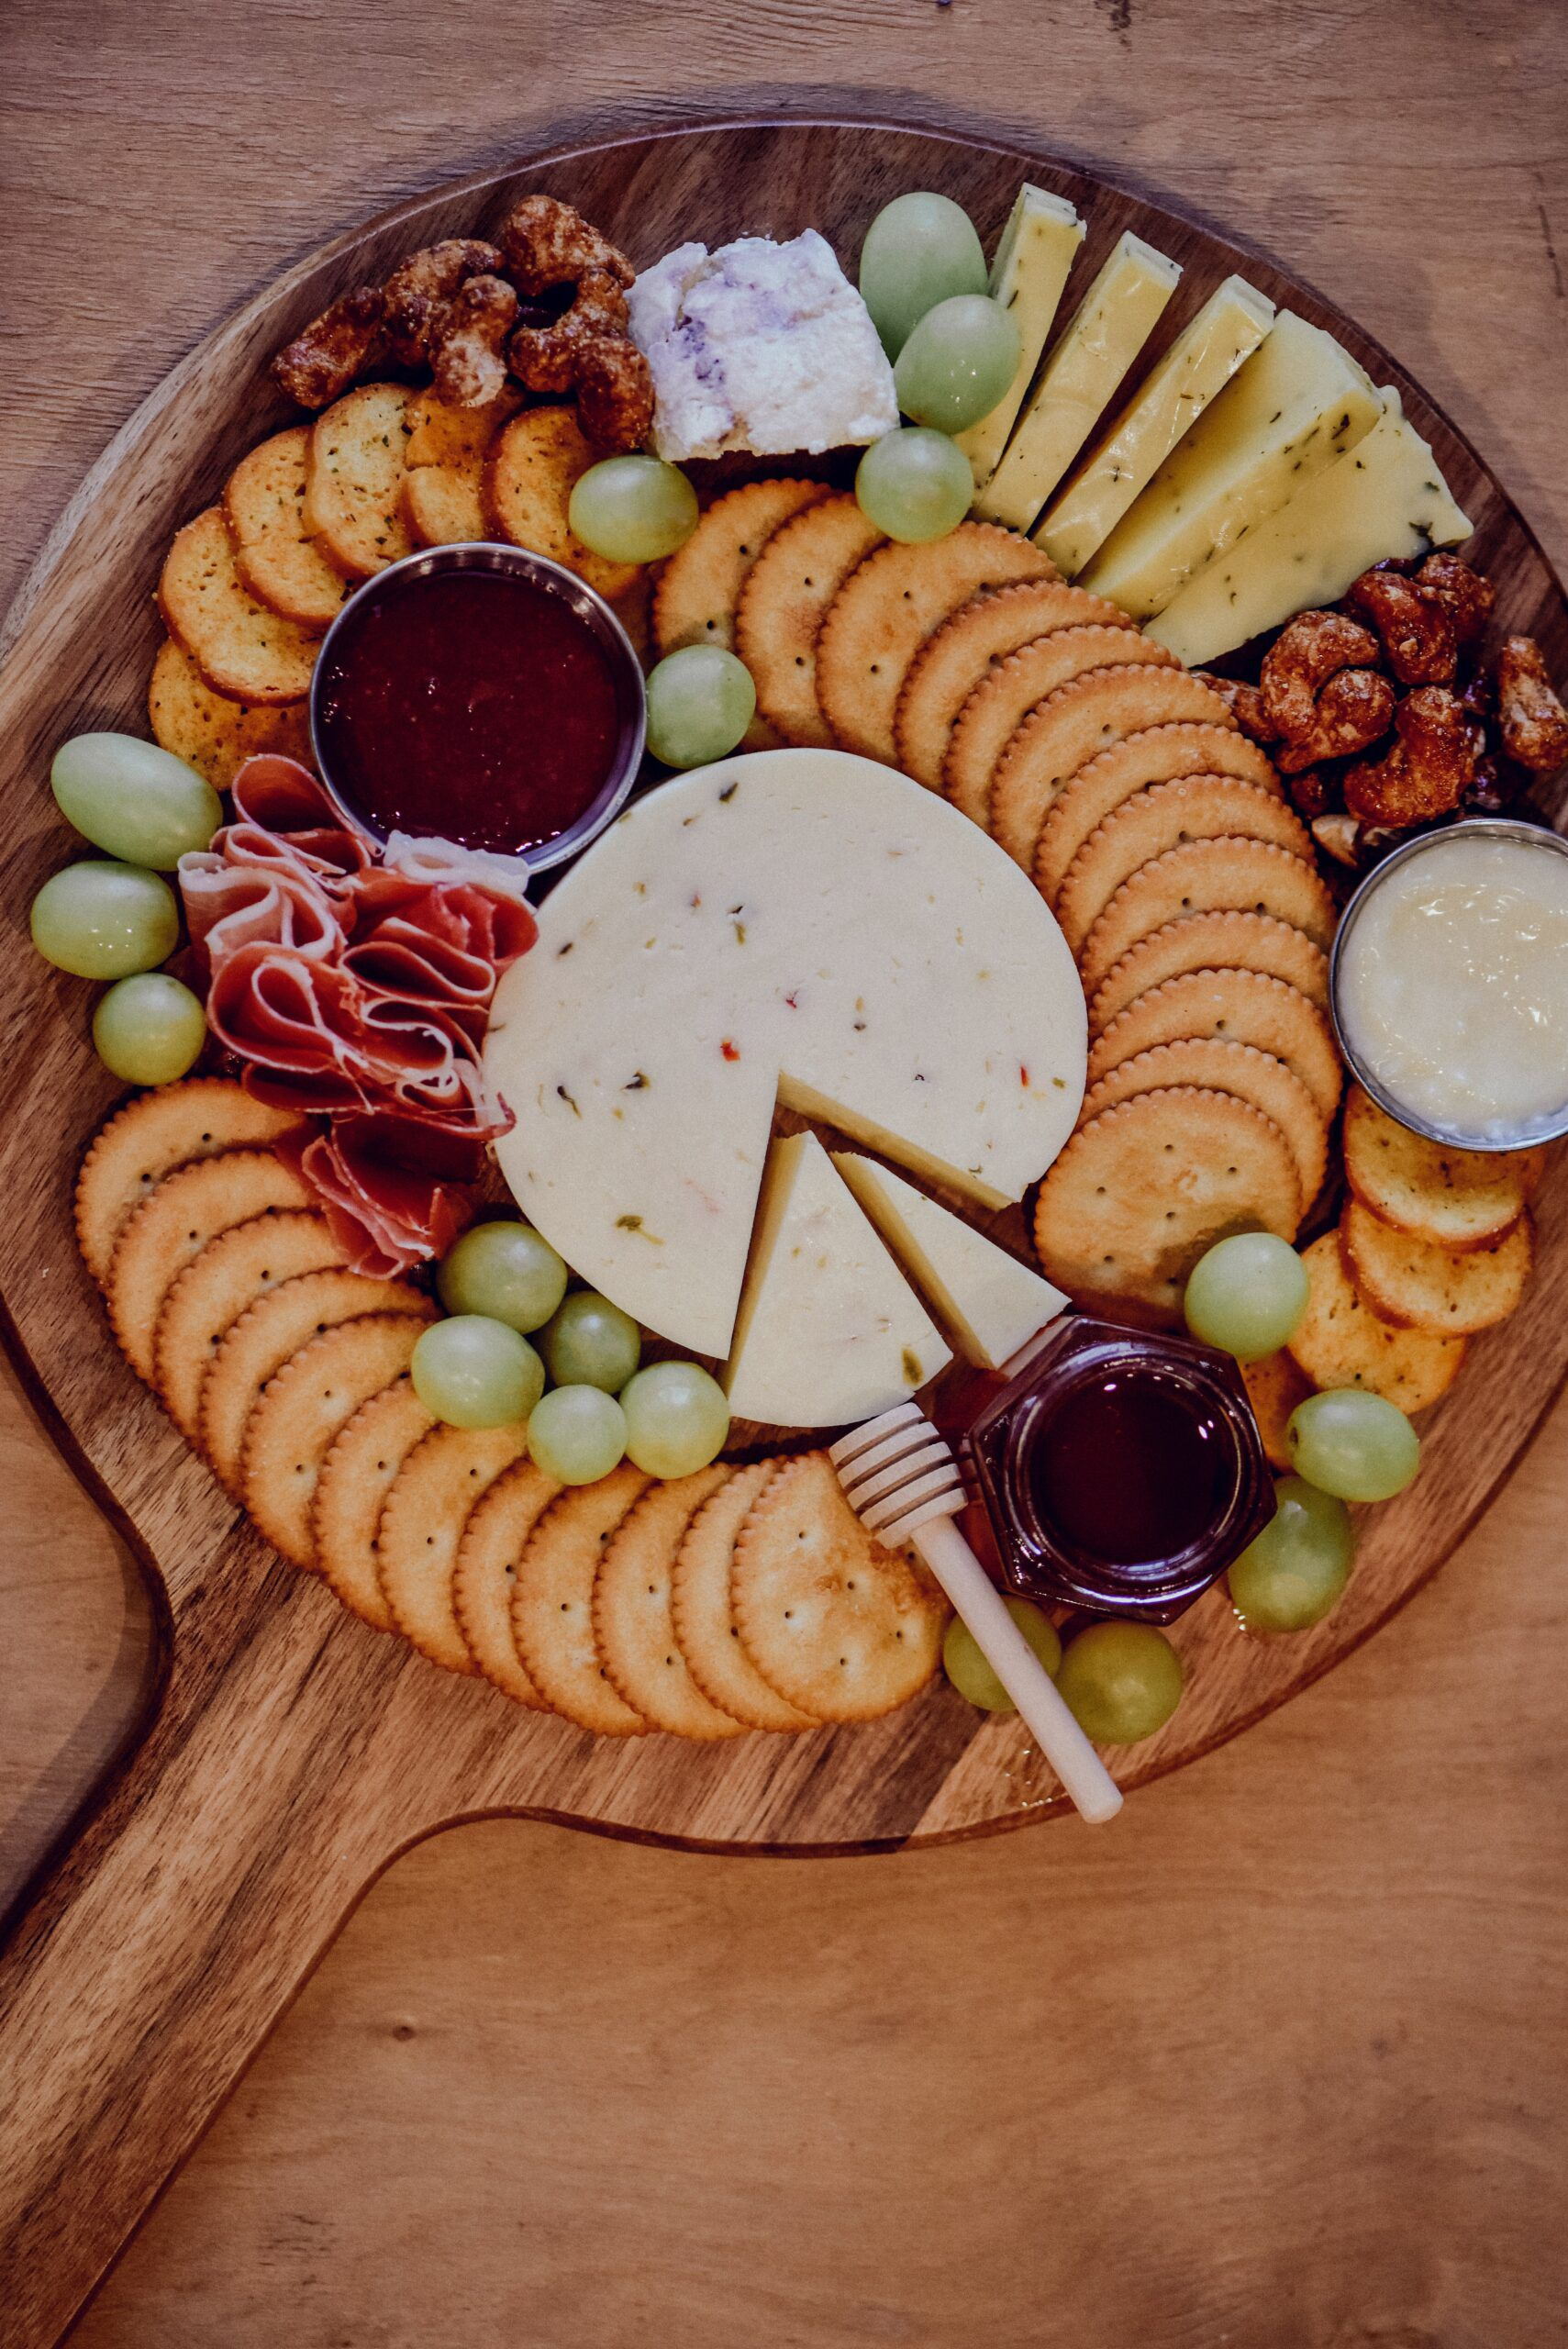 cutting board with handle holding crackers, jam, cheese, meat, and fruit